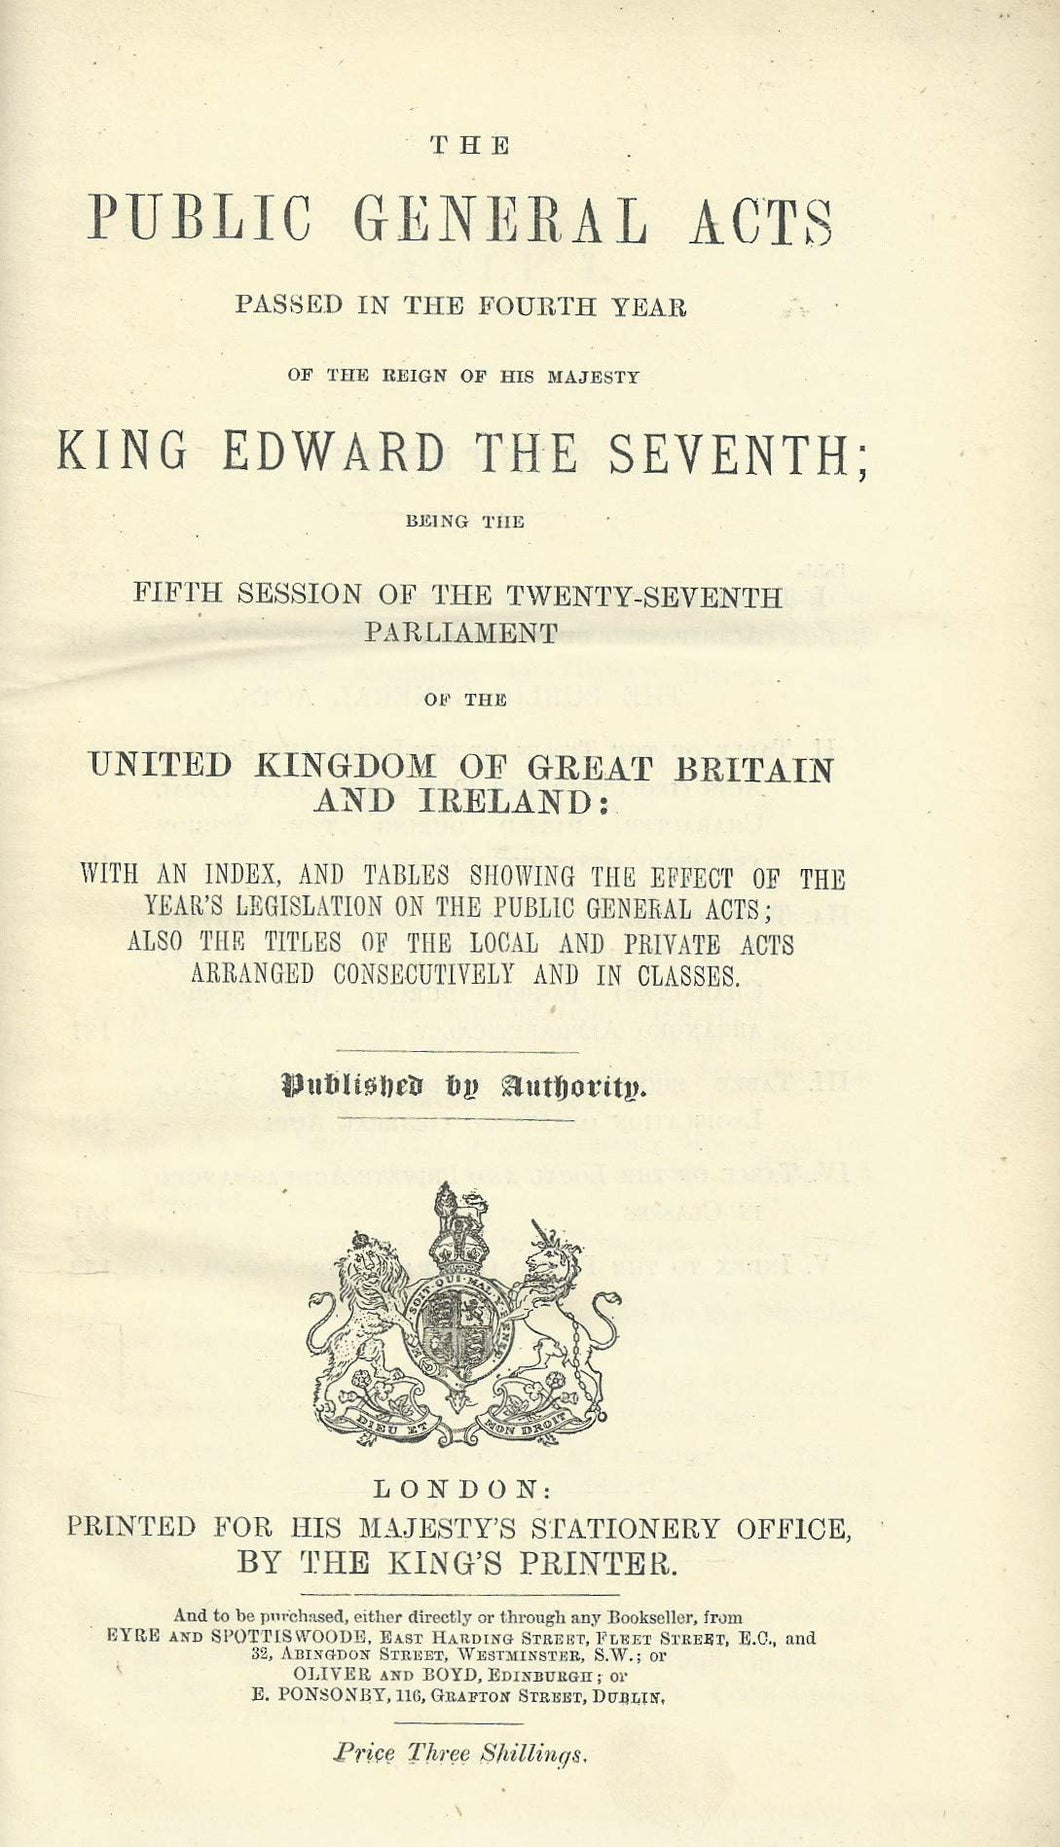 PUBLIC GENERAL ACTS 1904.